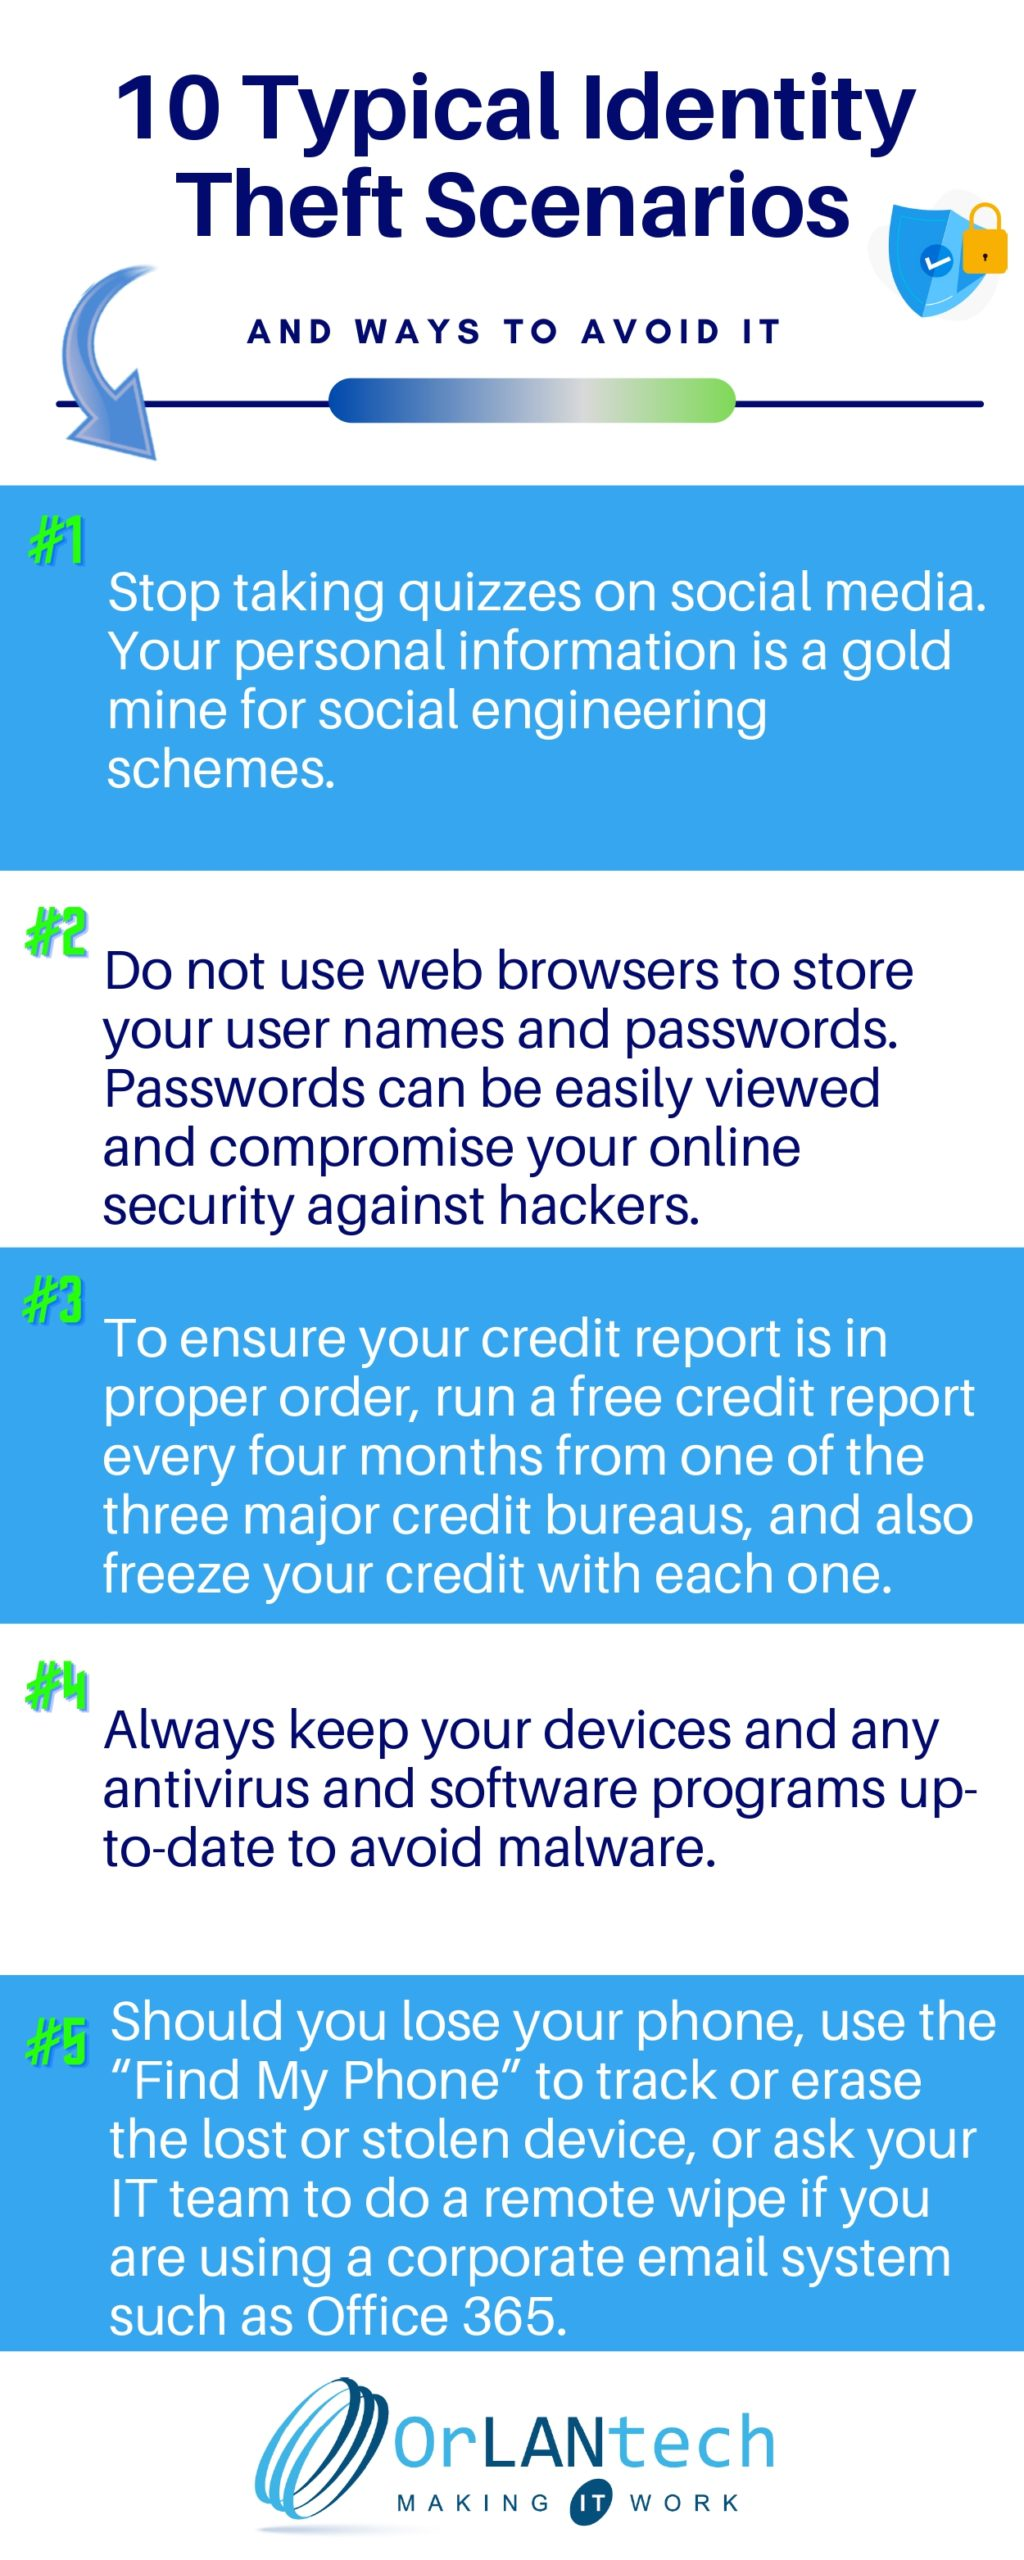 10-Typical-Identity-Theft-Scenarios_r1-scaled